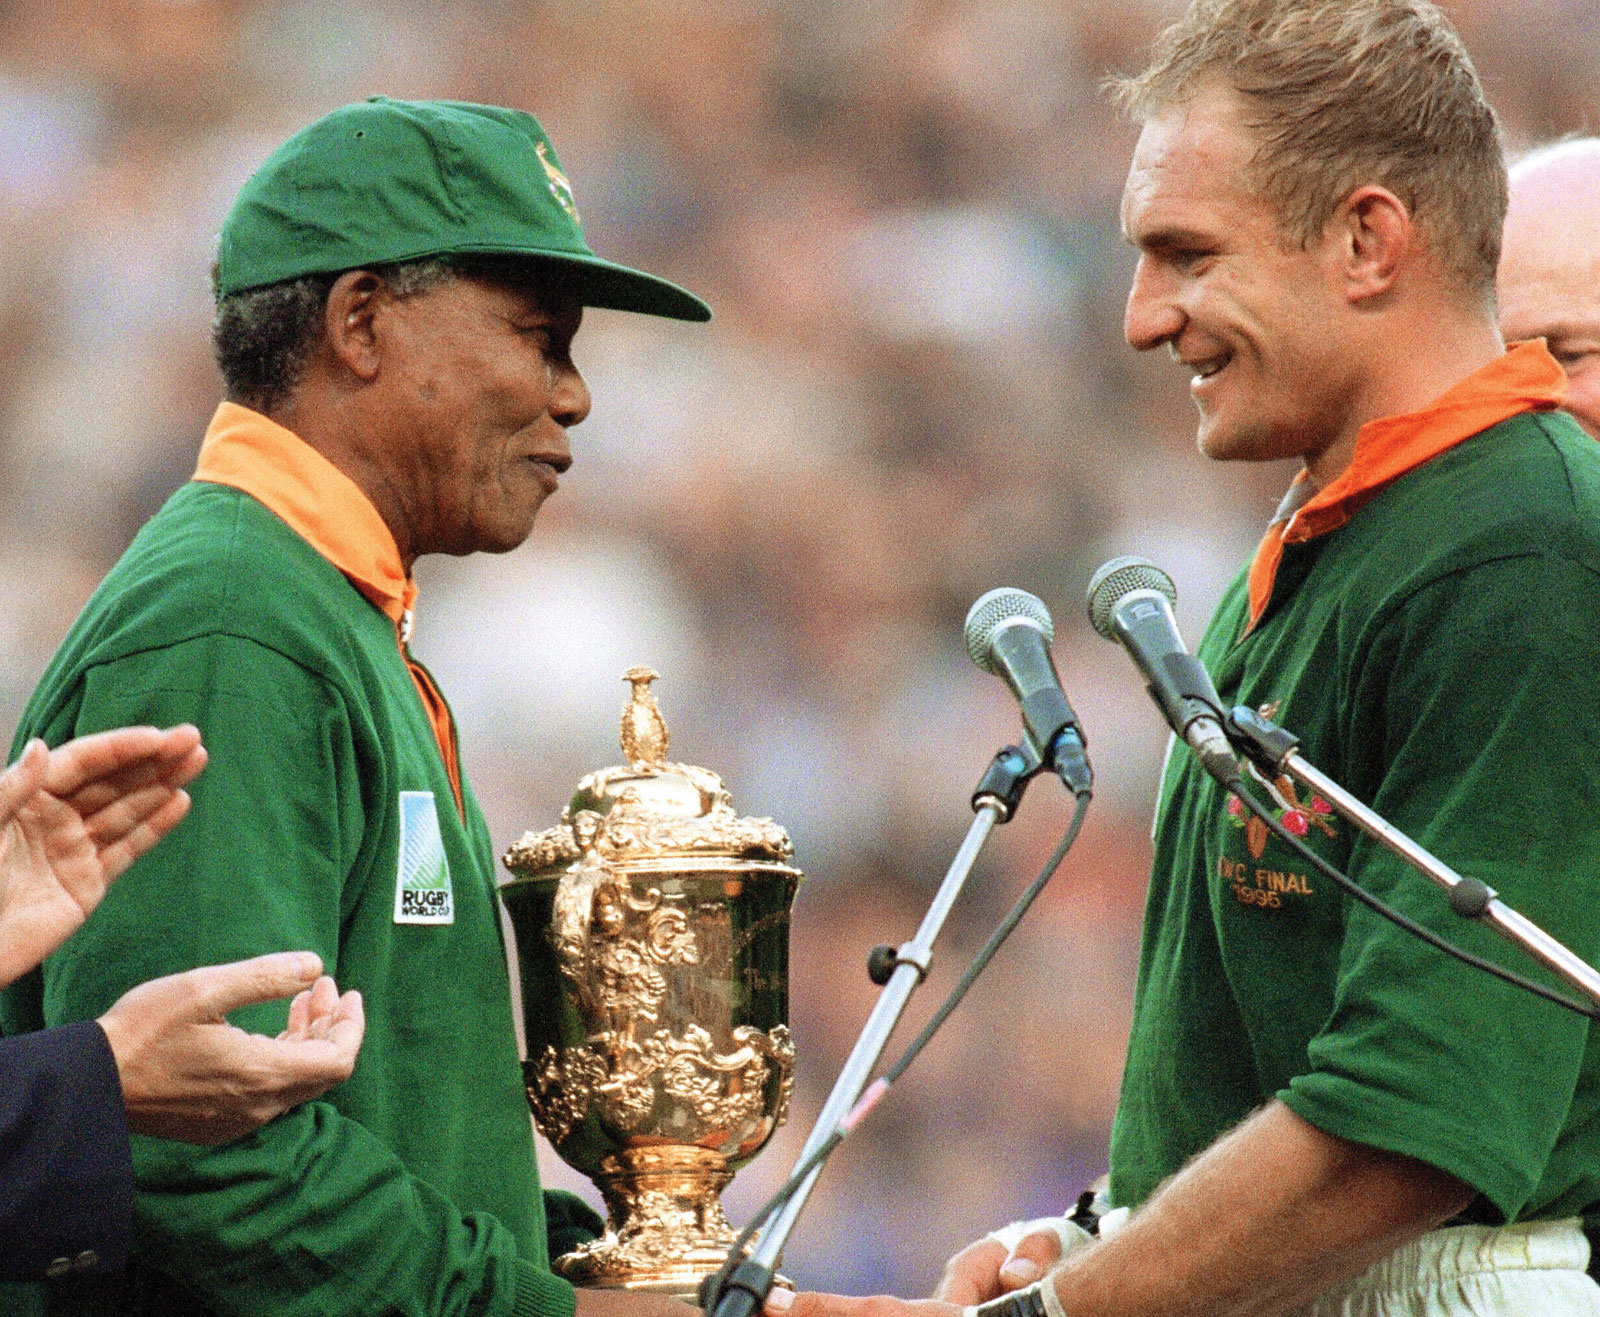 nelson-mandela-rougby-world-cup-1995-